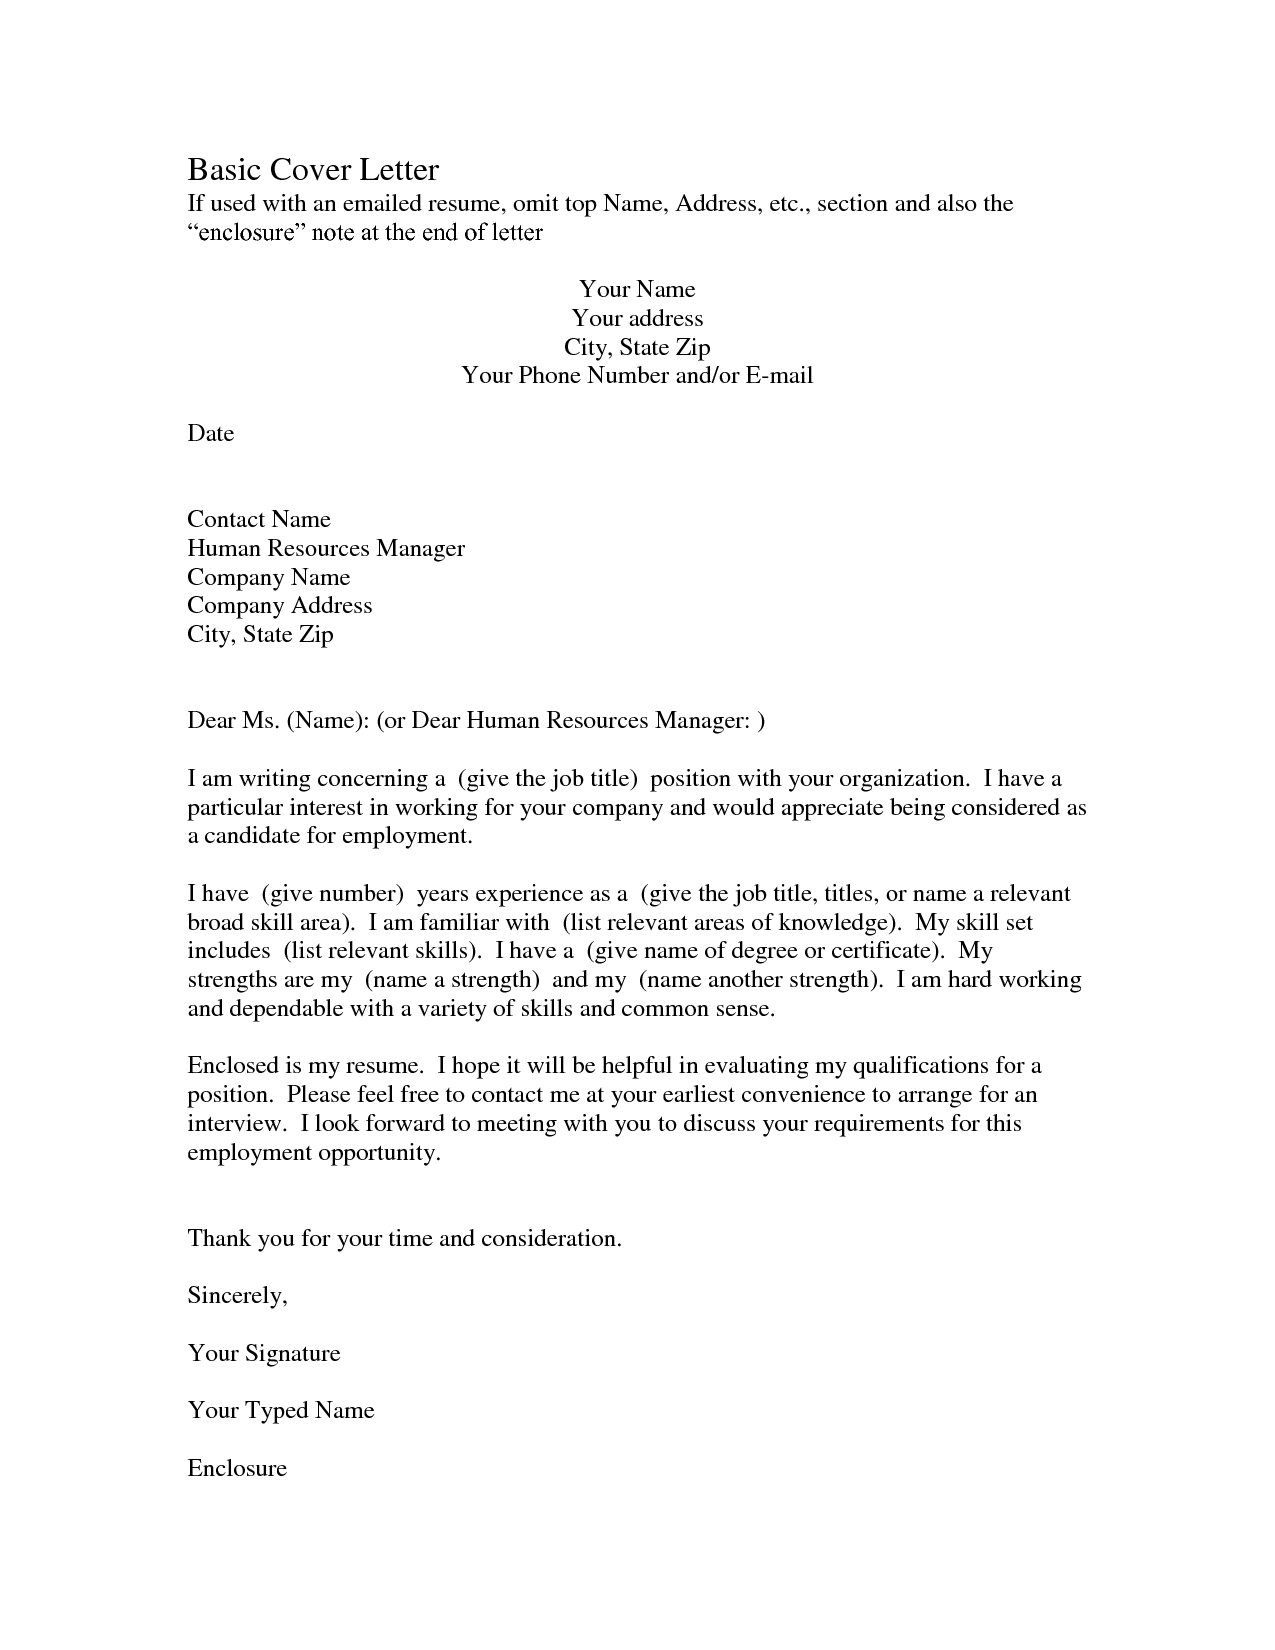 Covering letter example simple cover letter examplesimple cover covering letter example simple cover letter examplesimple cover letter application letter sample yadclub Image collections